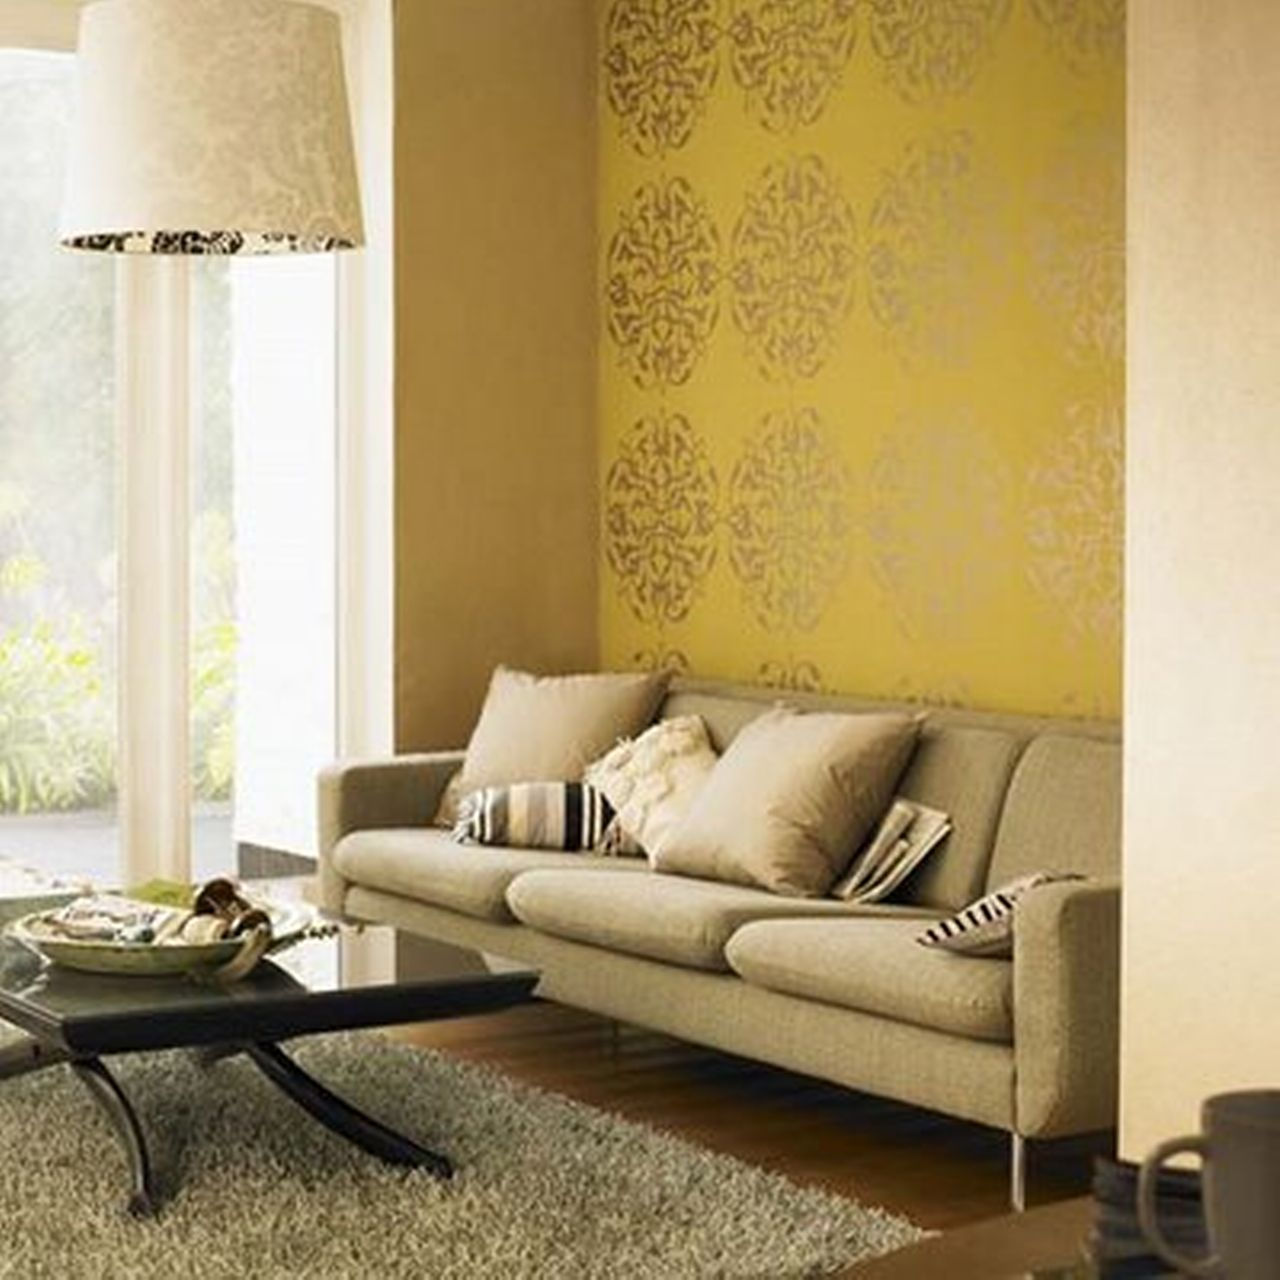 Lovely Living Room Wallpaper Accent Wall Ideas - The Wall Art ...